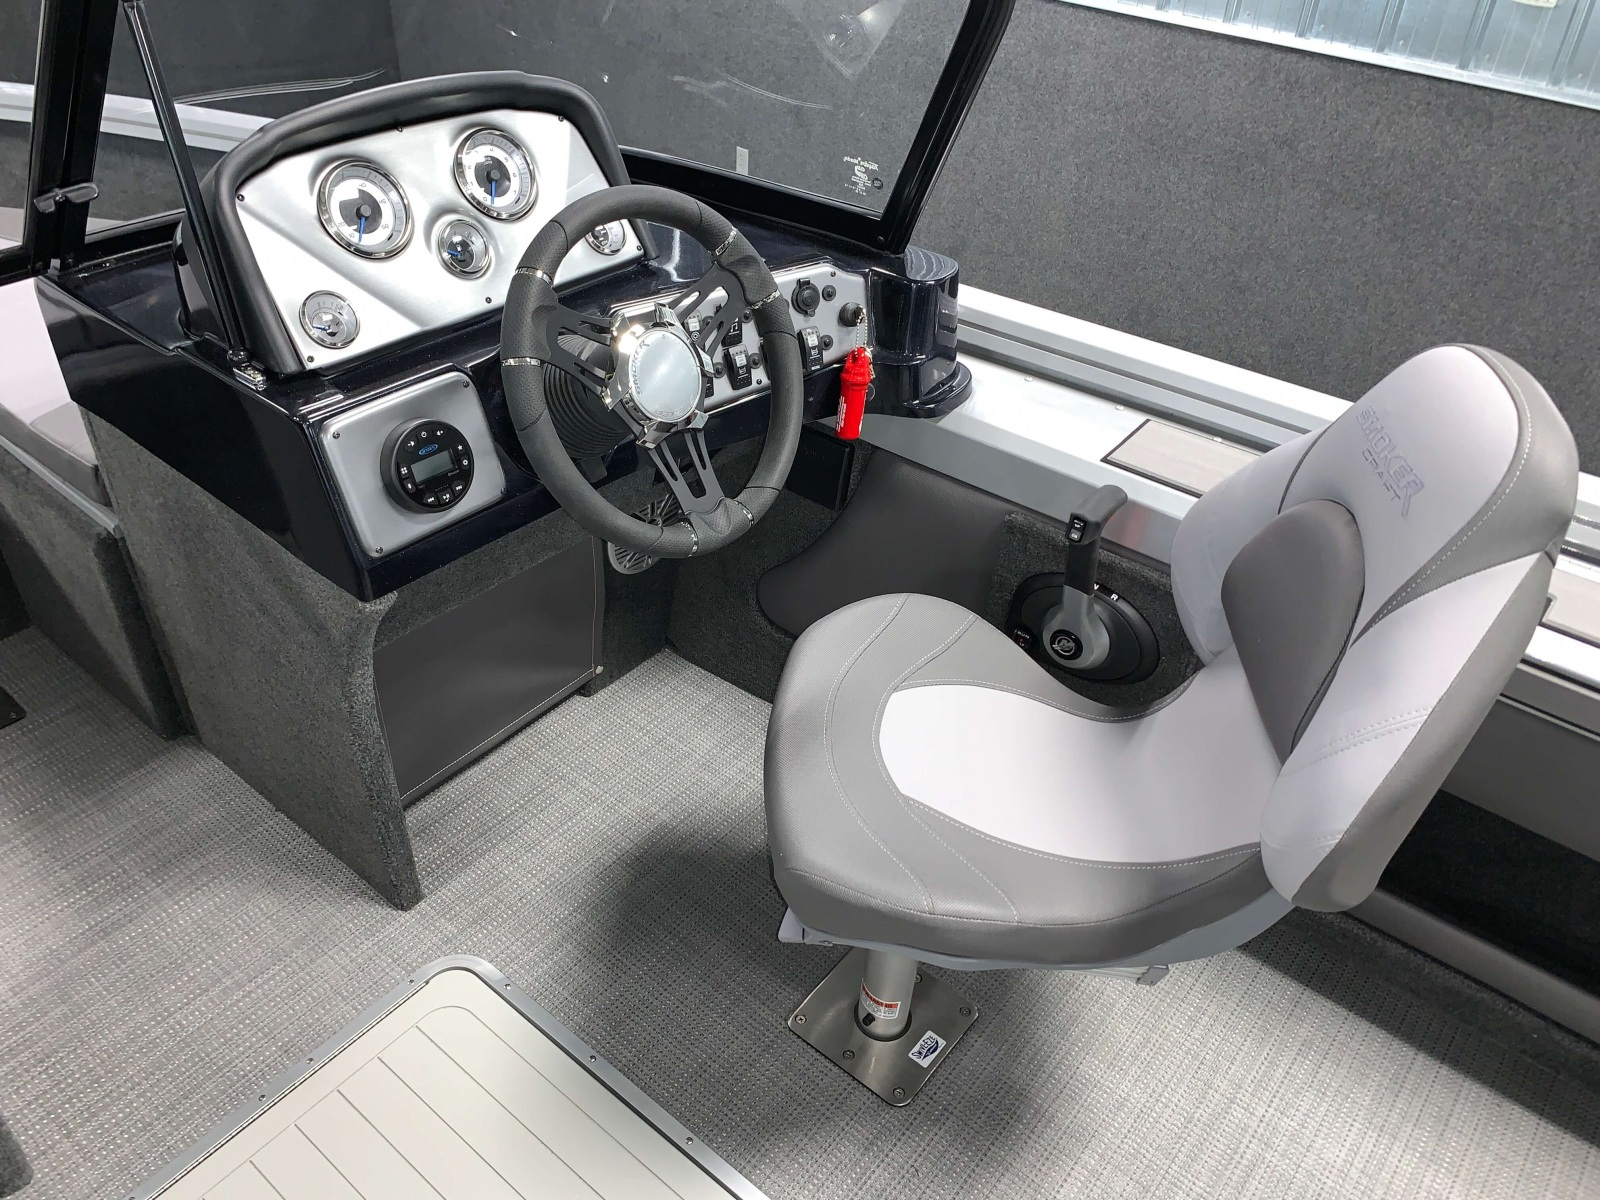 Driver's Console of a 2021 Smoker Craft 172 Explorer Fish And Ski Boat